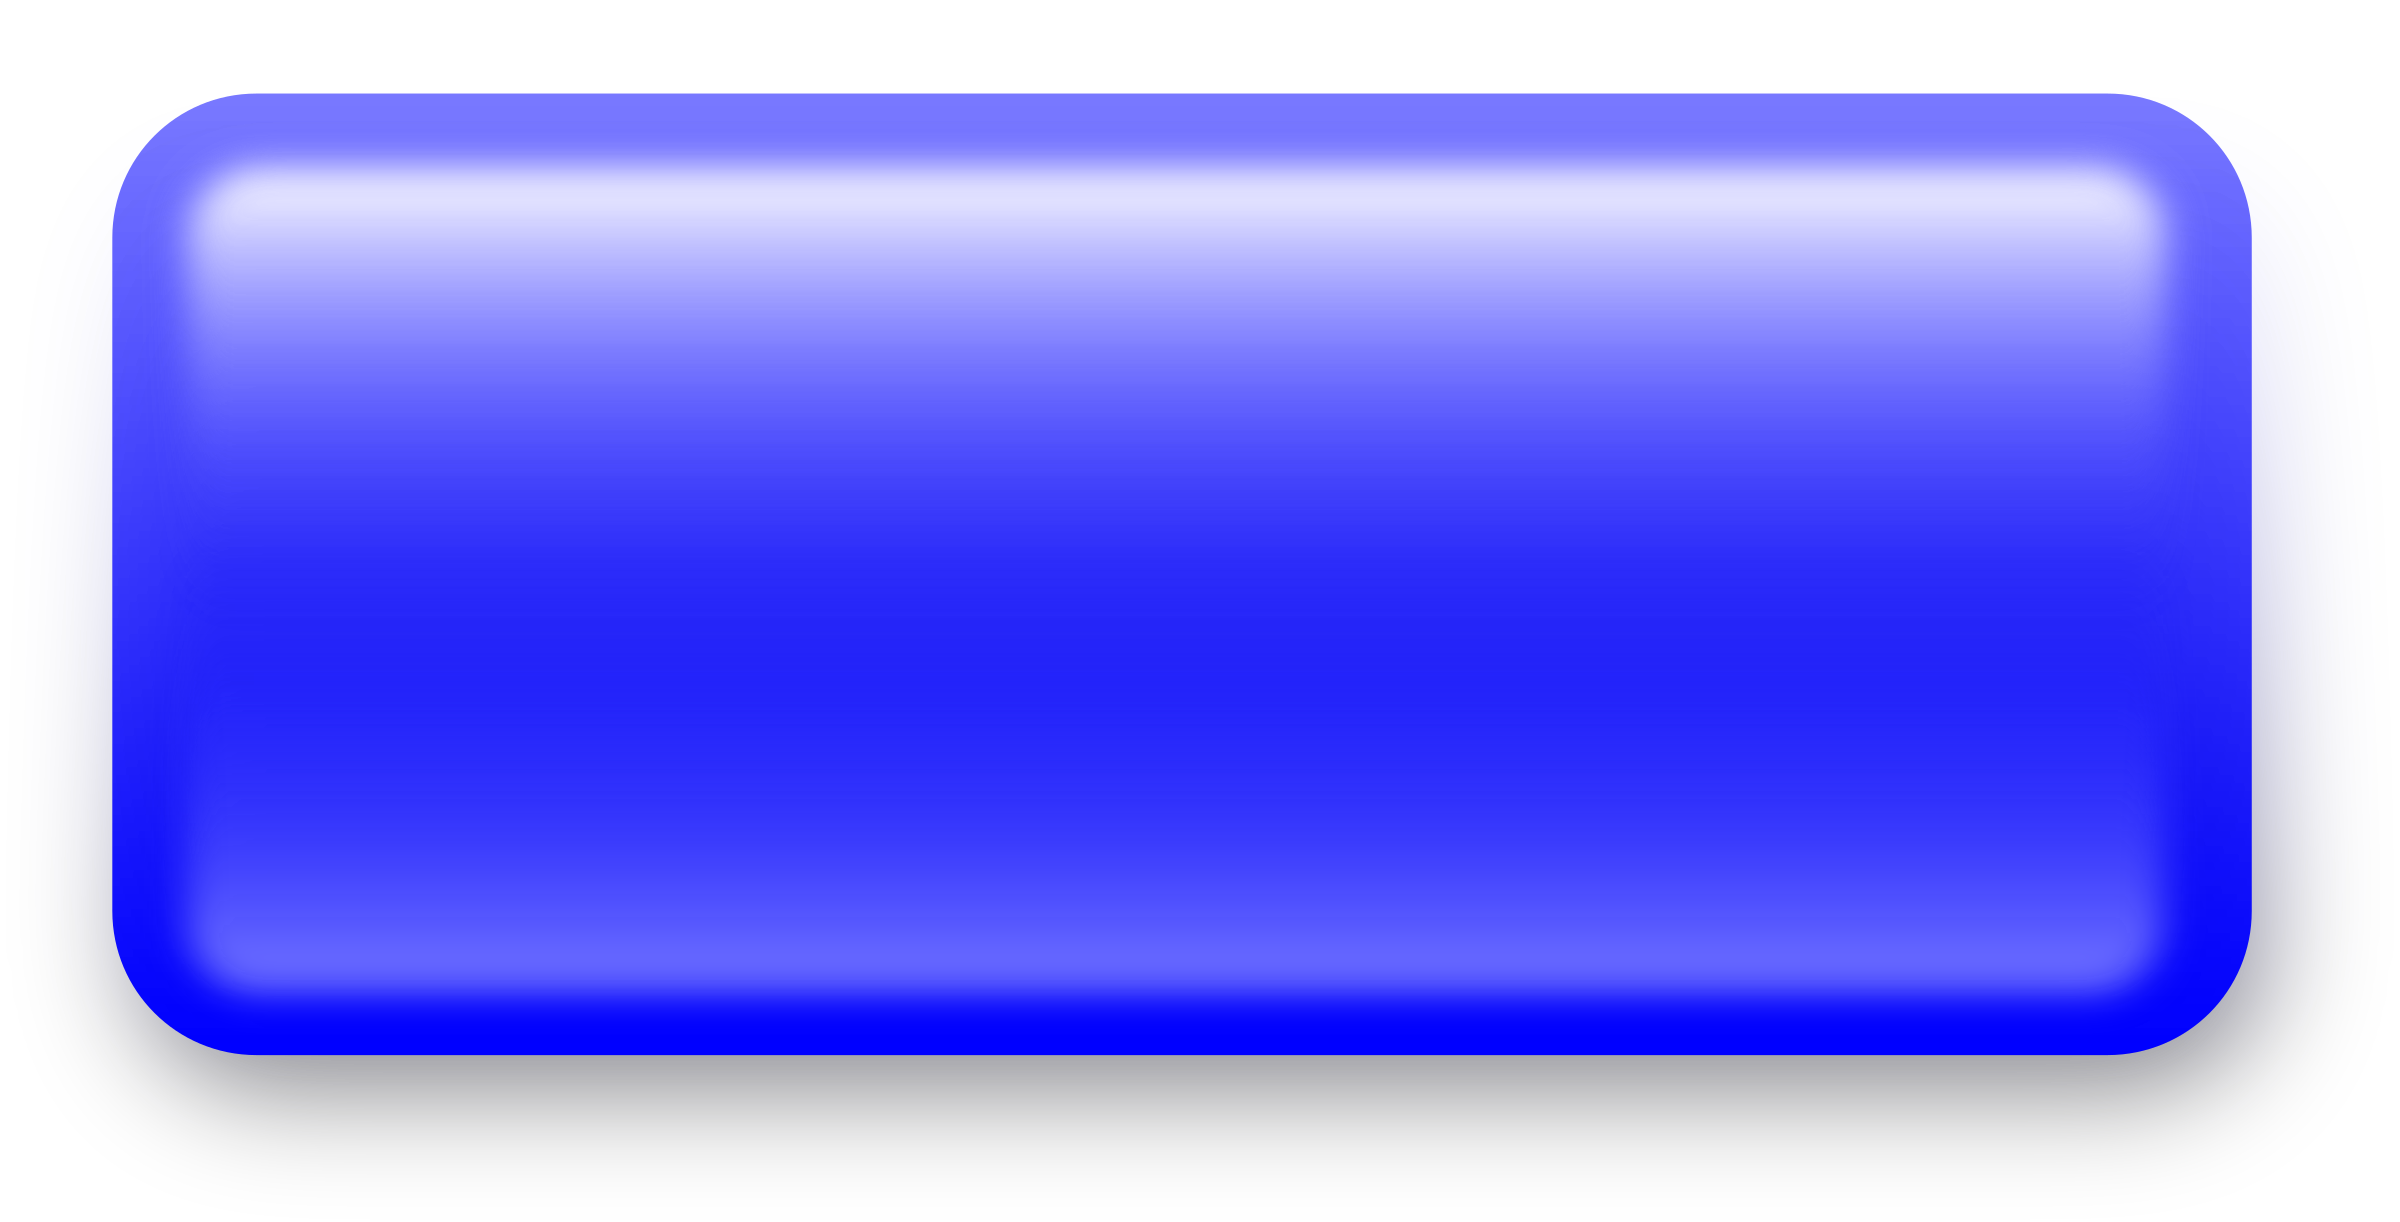 Rectangulo 3d png 3 » PNG Image.